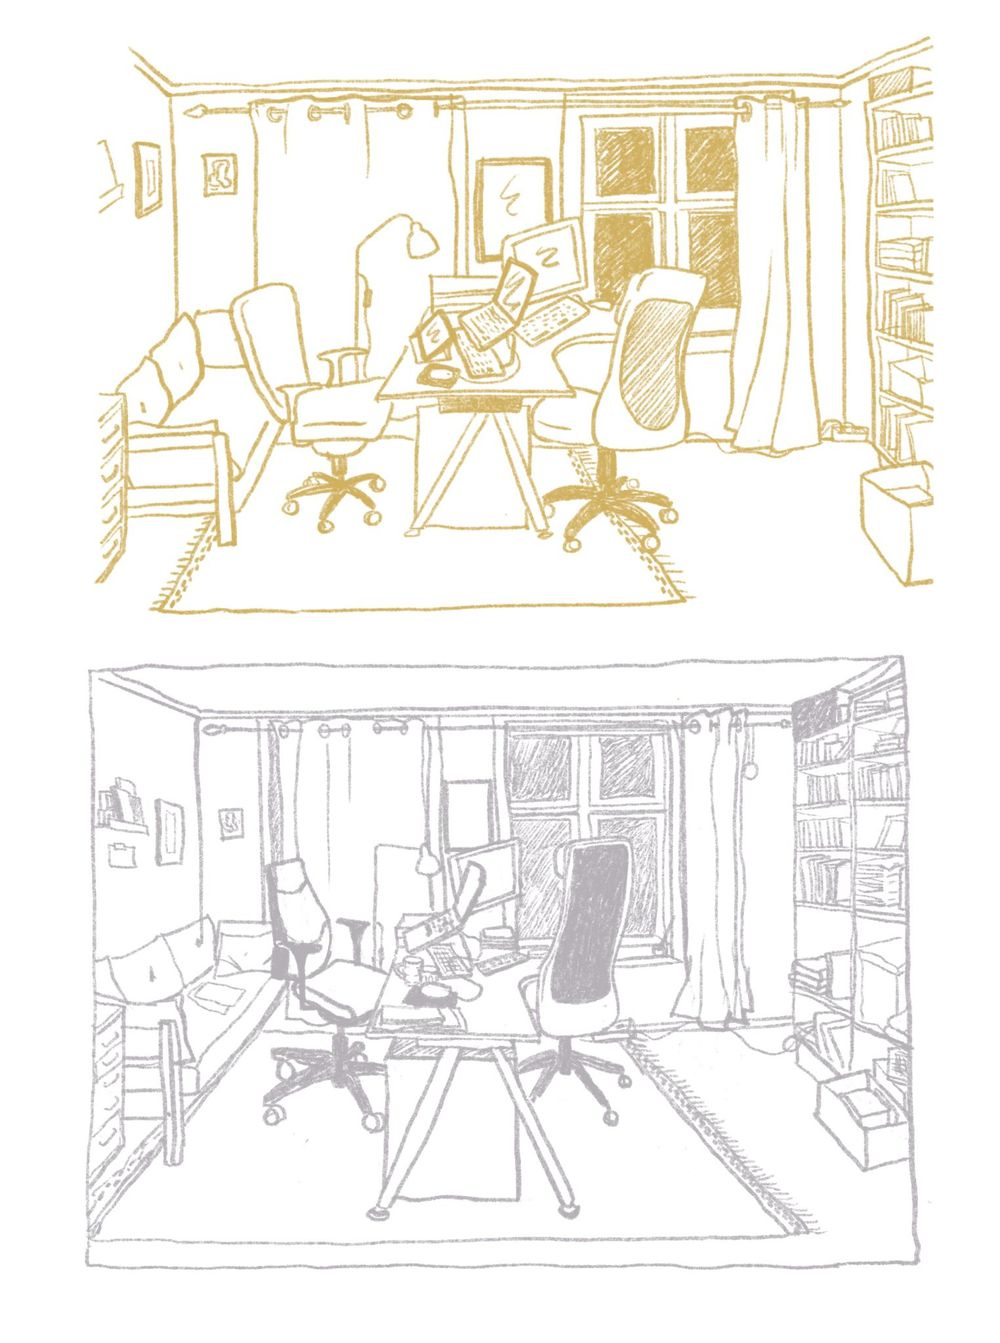 Drawing My Workspace - image 3 - student project